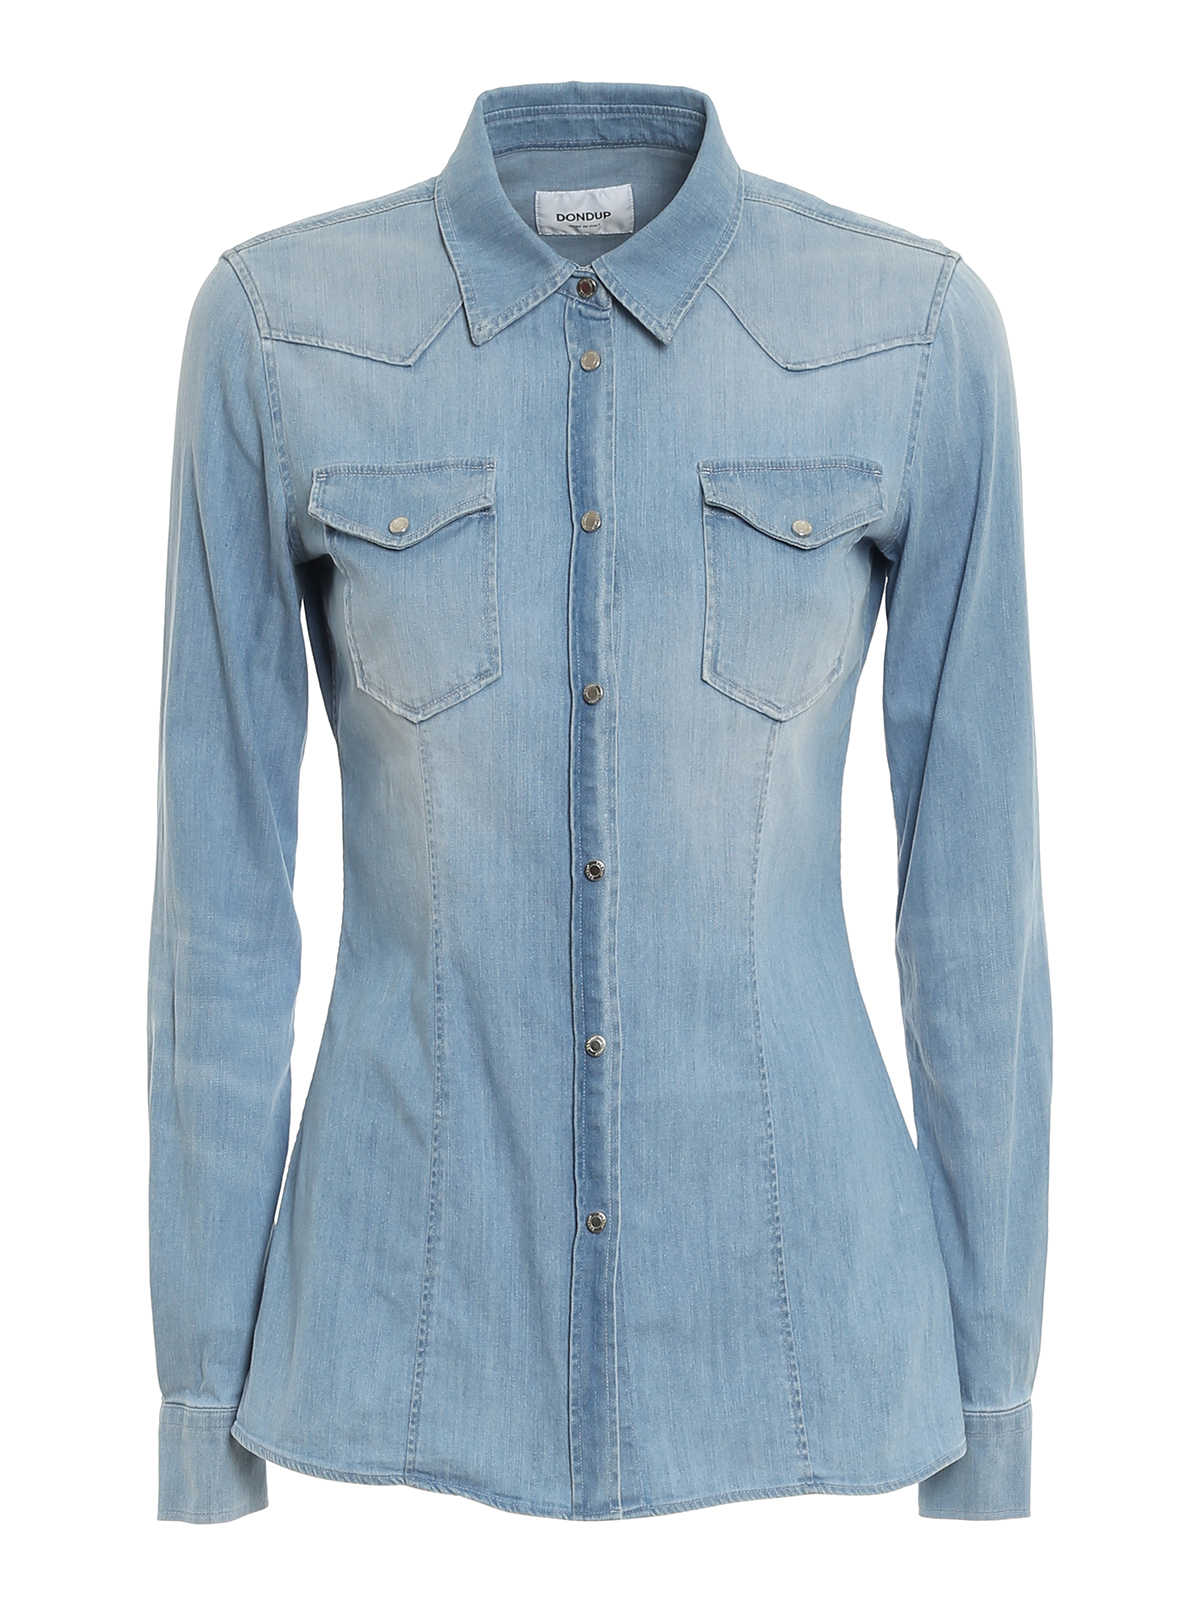 Dondup FADED DENIM SHIRT